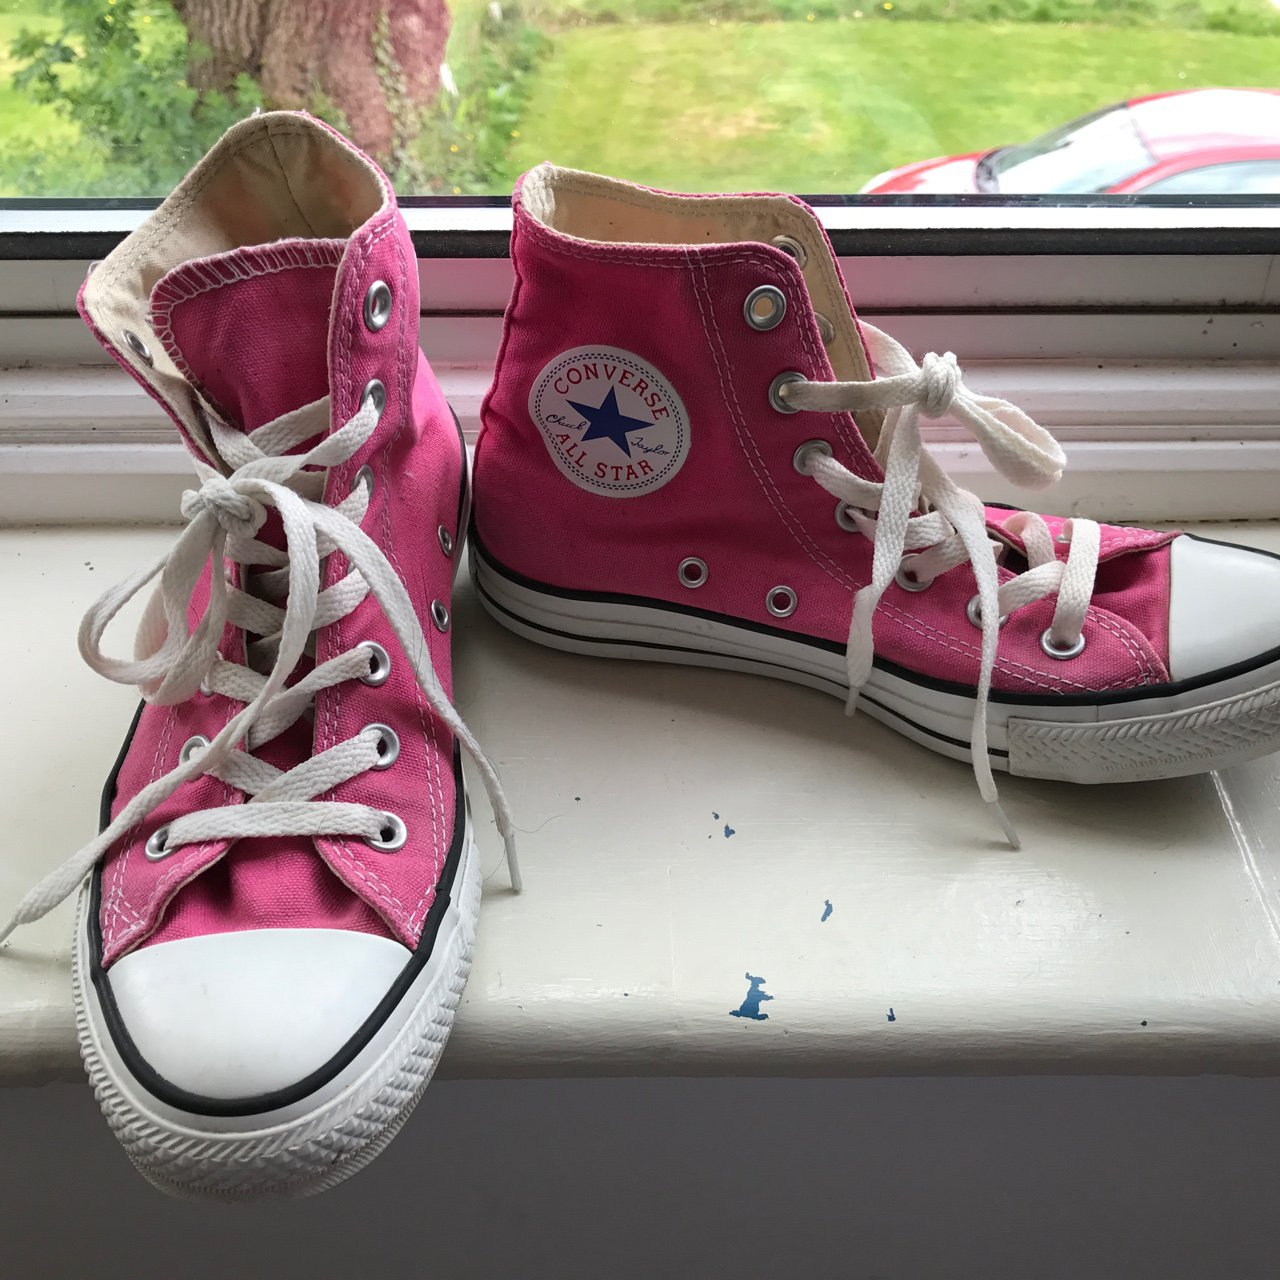 d60d168b9a29a5 Pink high top converse size 5 in great condition  converse - Depop